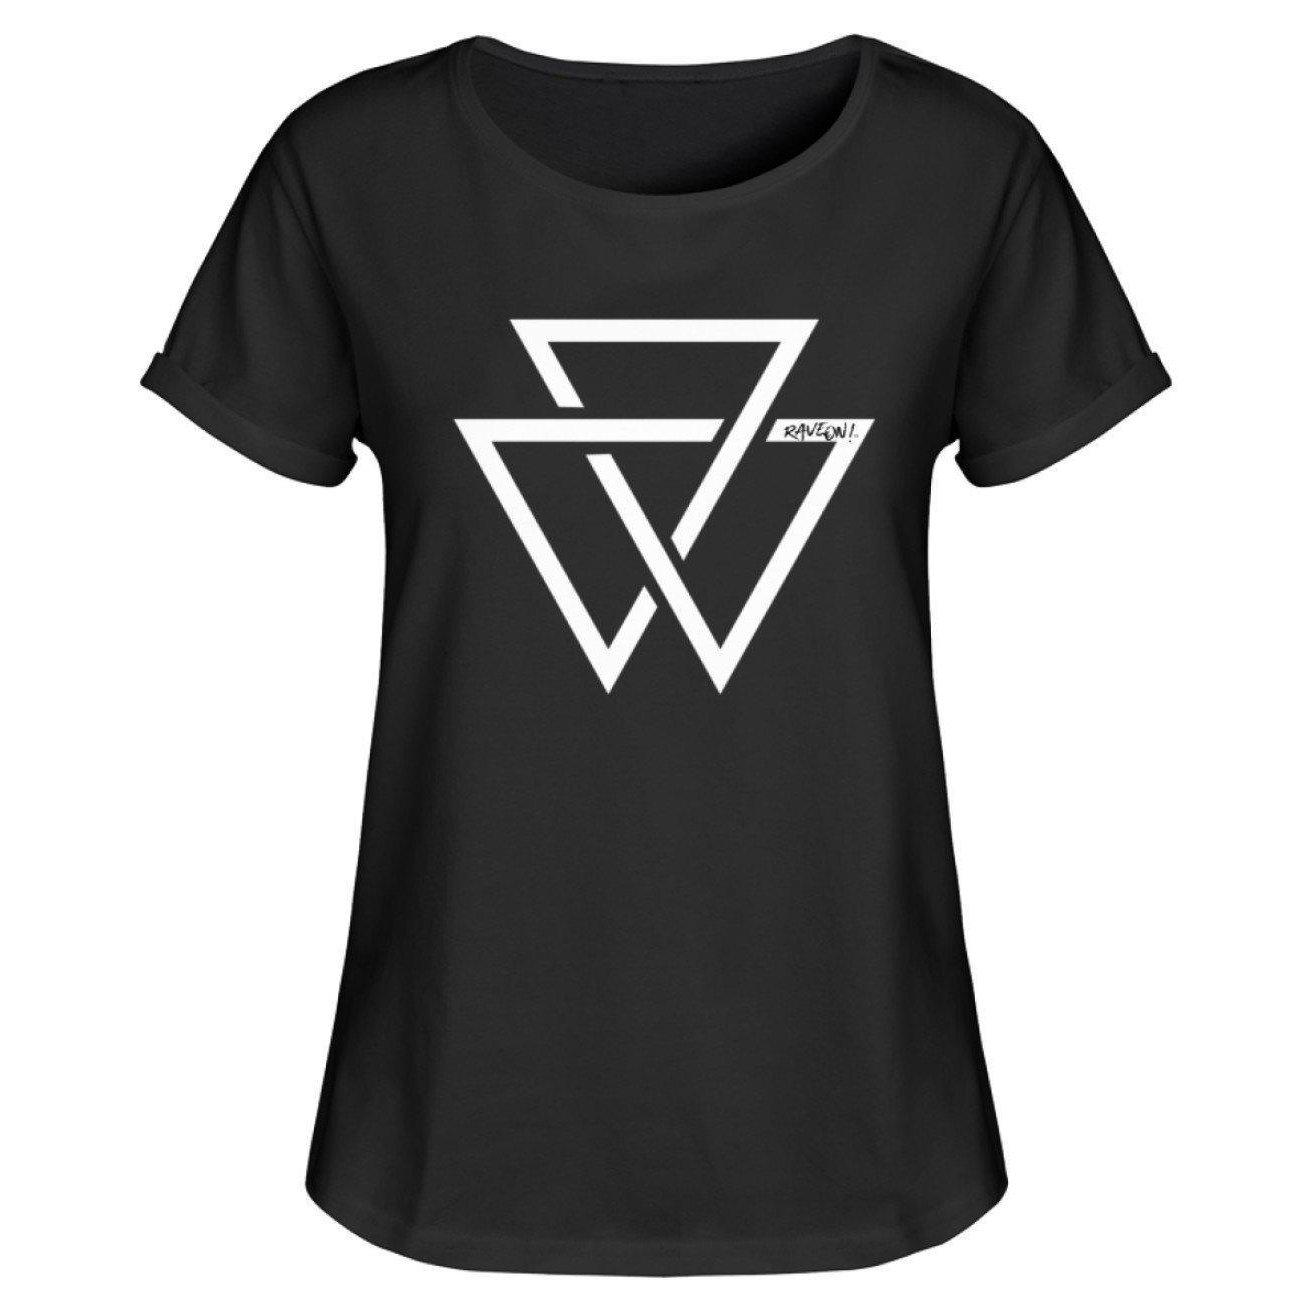 Triangle Rave On!® T-Shirt - Damen RollUp Shirt-Women Rollup Shirt-Schwarz-S-Rave-On! I www.rave-on.shop I Deine Rave & Techno Szene Shop I apparel, cool, dreieck, dreiecke, fresh, funny, girls, i heart raves, ladies, on!®, rave, rave apparel, rave clothes, rave clothing, rave fashion, rave gear, rave on, rave on!®, rave shop, rave t shirt, rave wear, ravebabe, ravegirl, raver, Raver girl, Raver innen, Raver shirt, techno apparel, technobabe, triangle, ® - Sexy Festival Streetwear , Clubwear & Raver Style